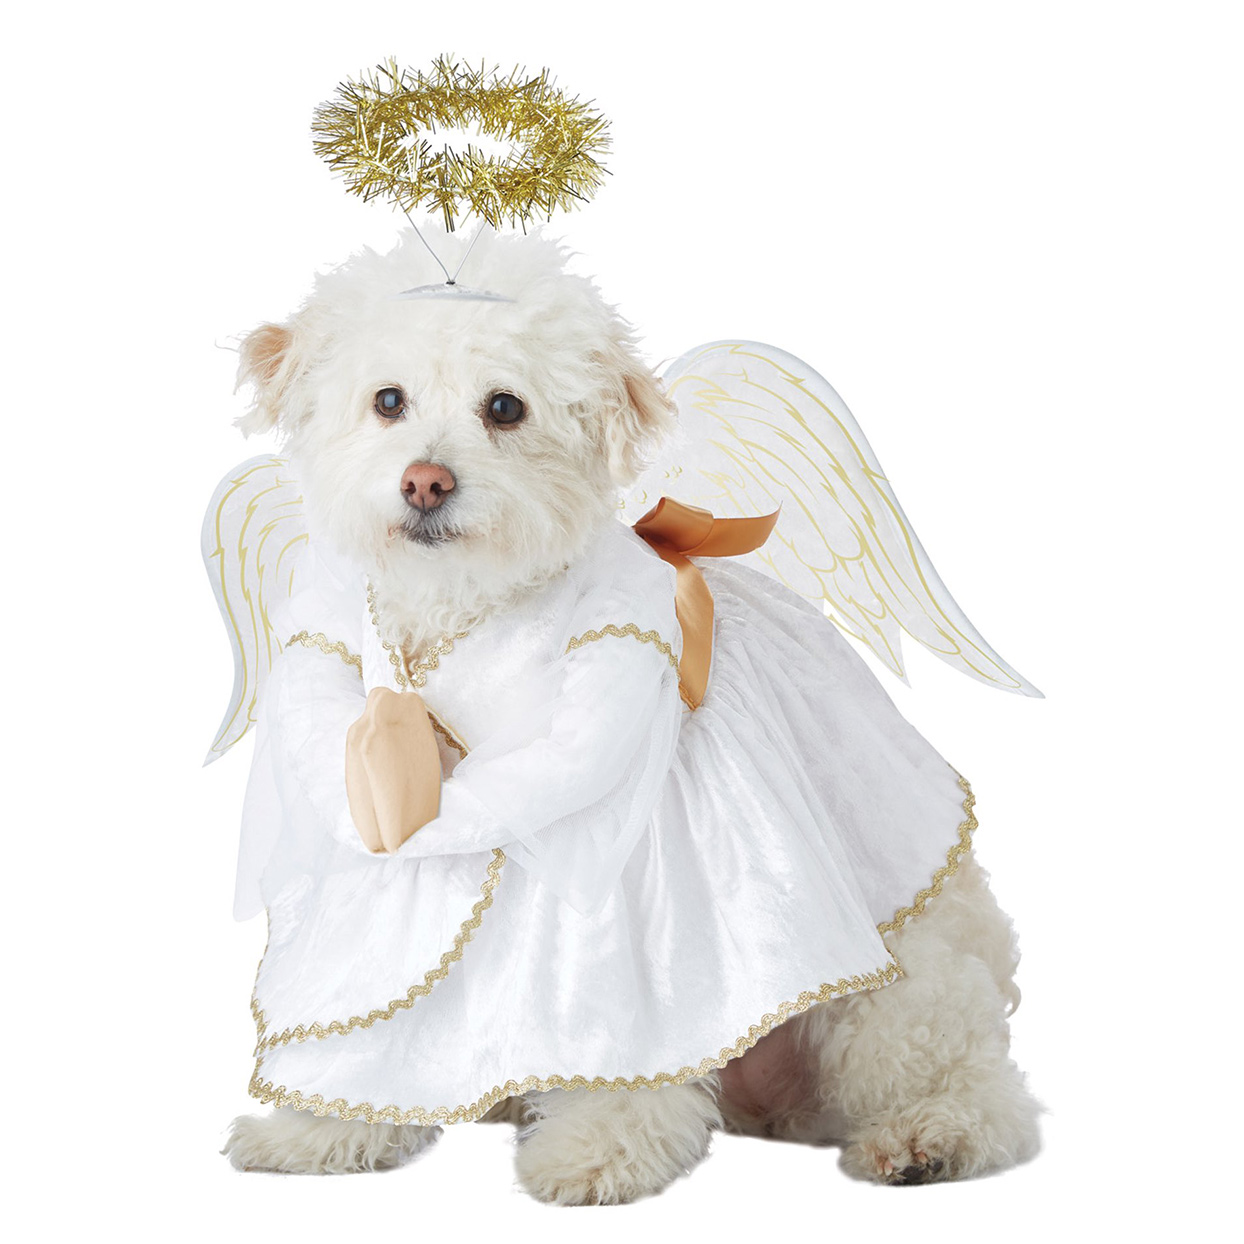 Dog wearing a Heavenly Hound Pet Costume on a white background